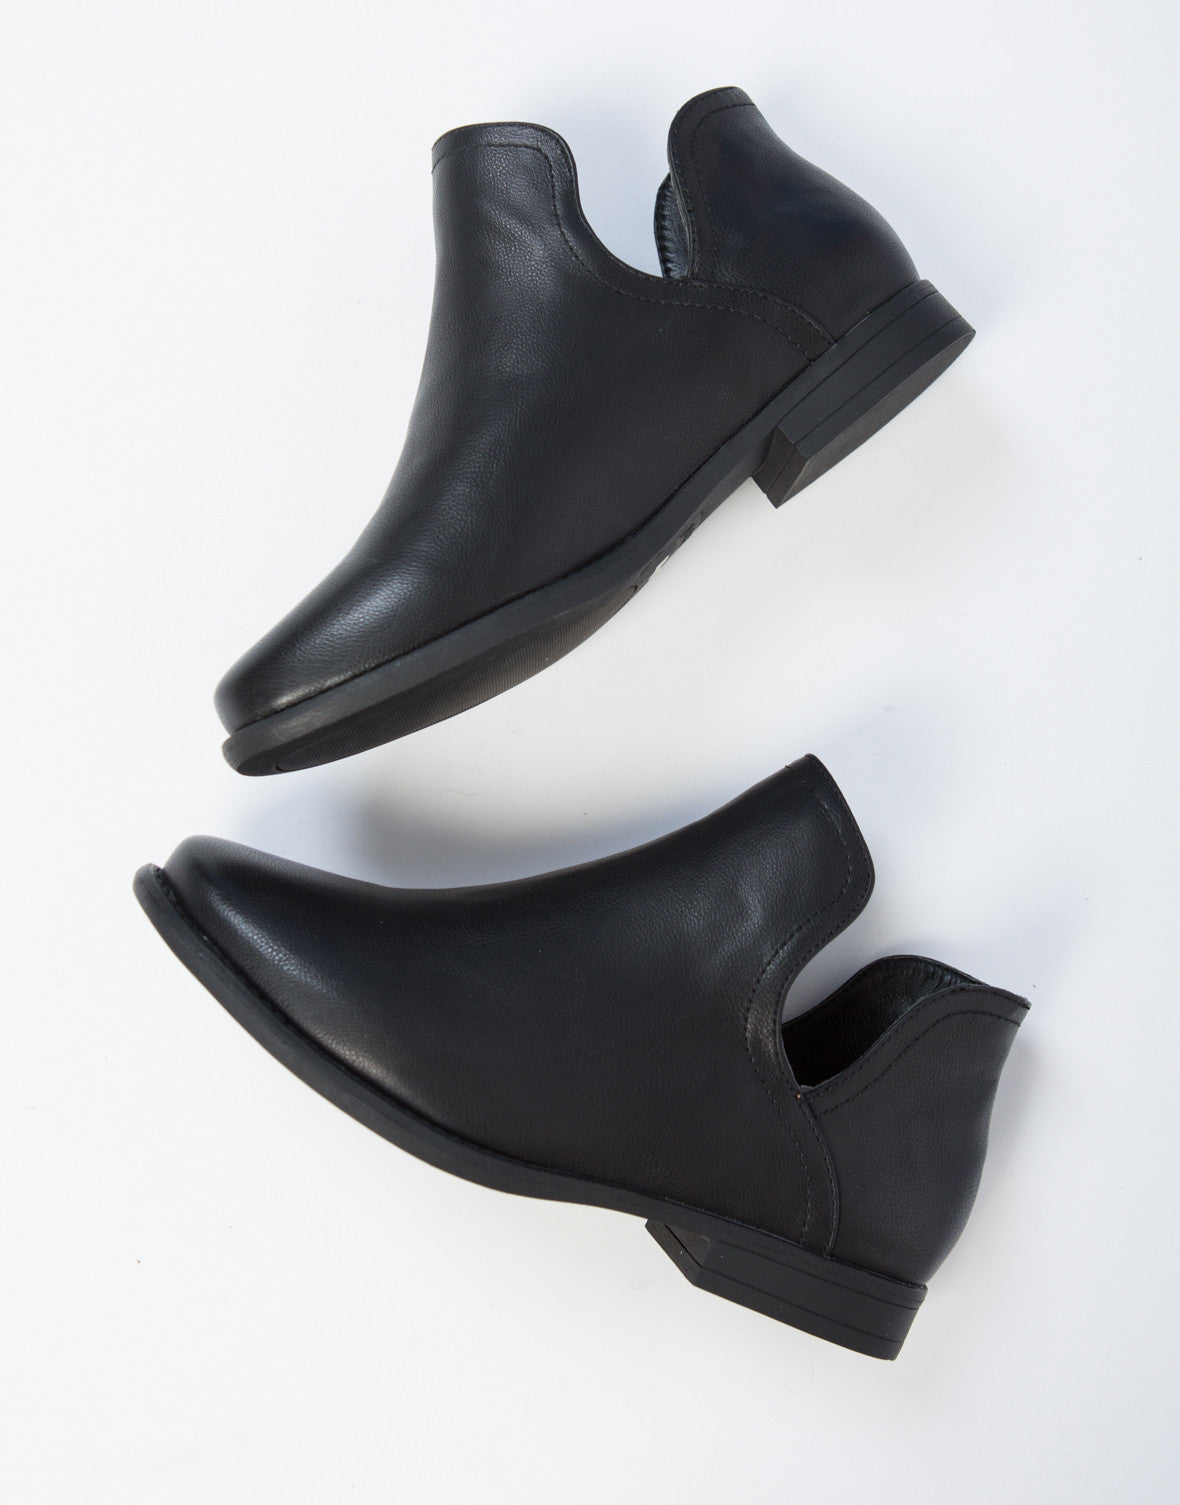 e9c0377dd588 Open Sides Ankle Booties - Black Leather Boots - Low Cut Ankle ...